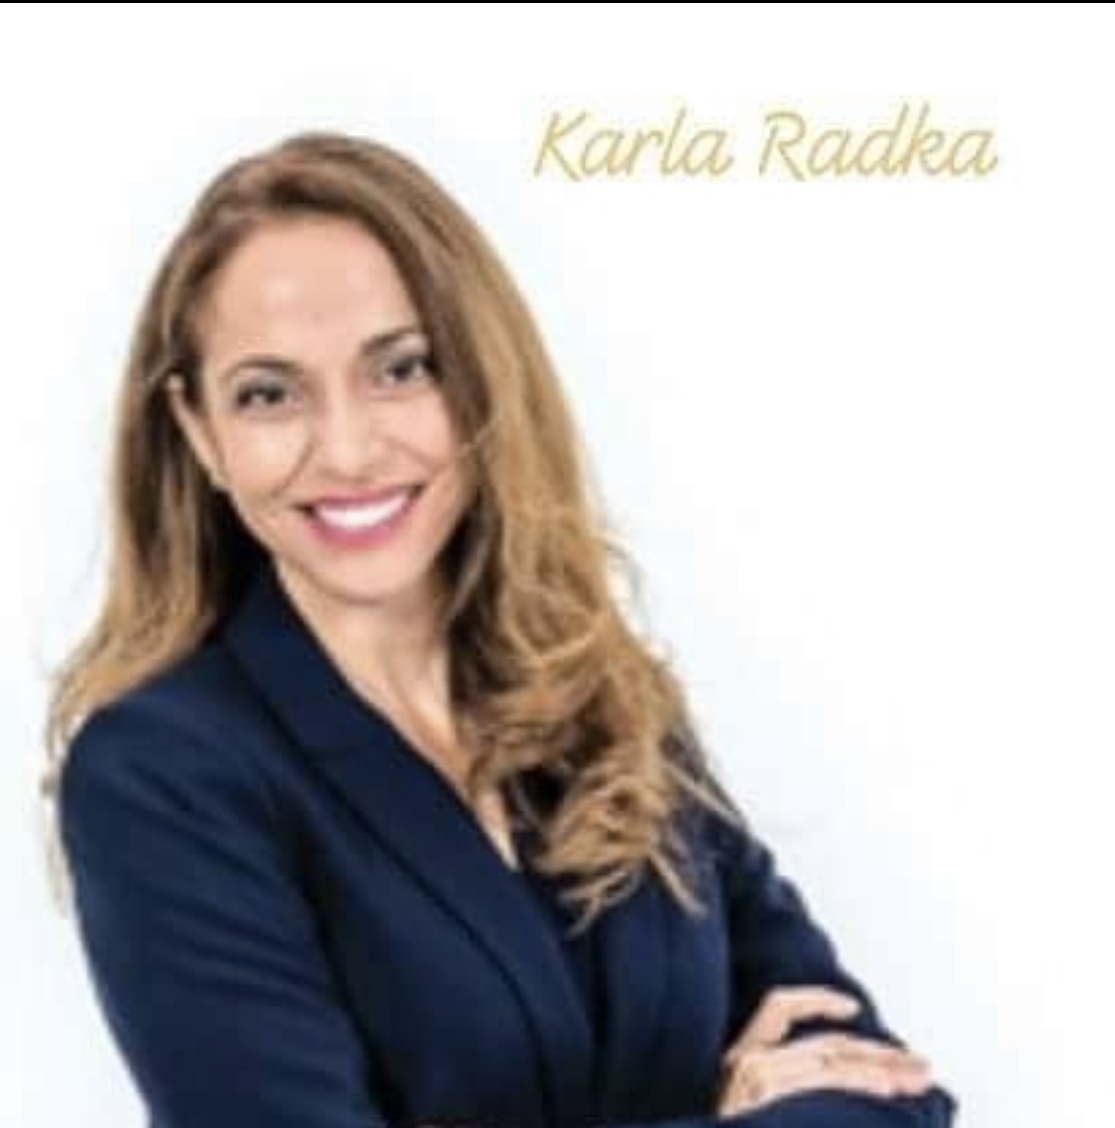 Karla Radka, Internationally known expert in Sustainable Fashion